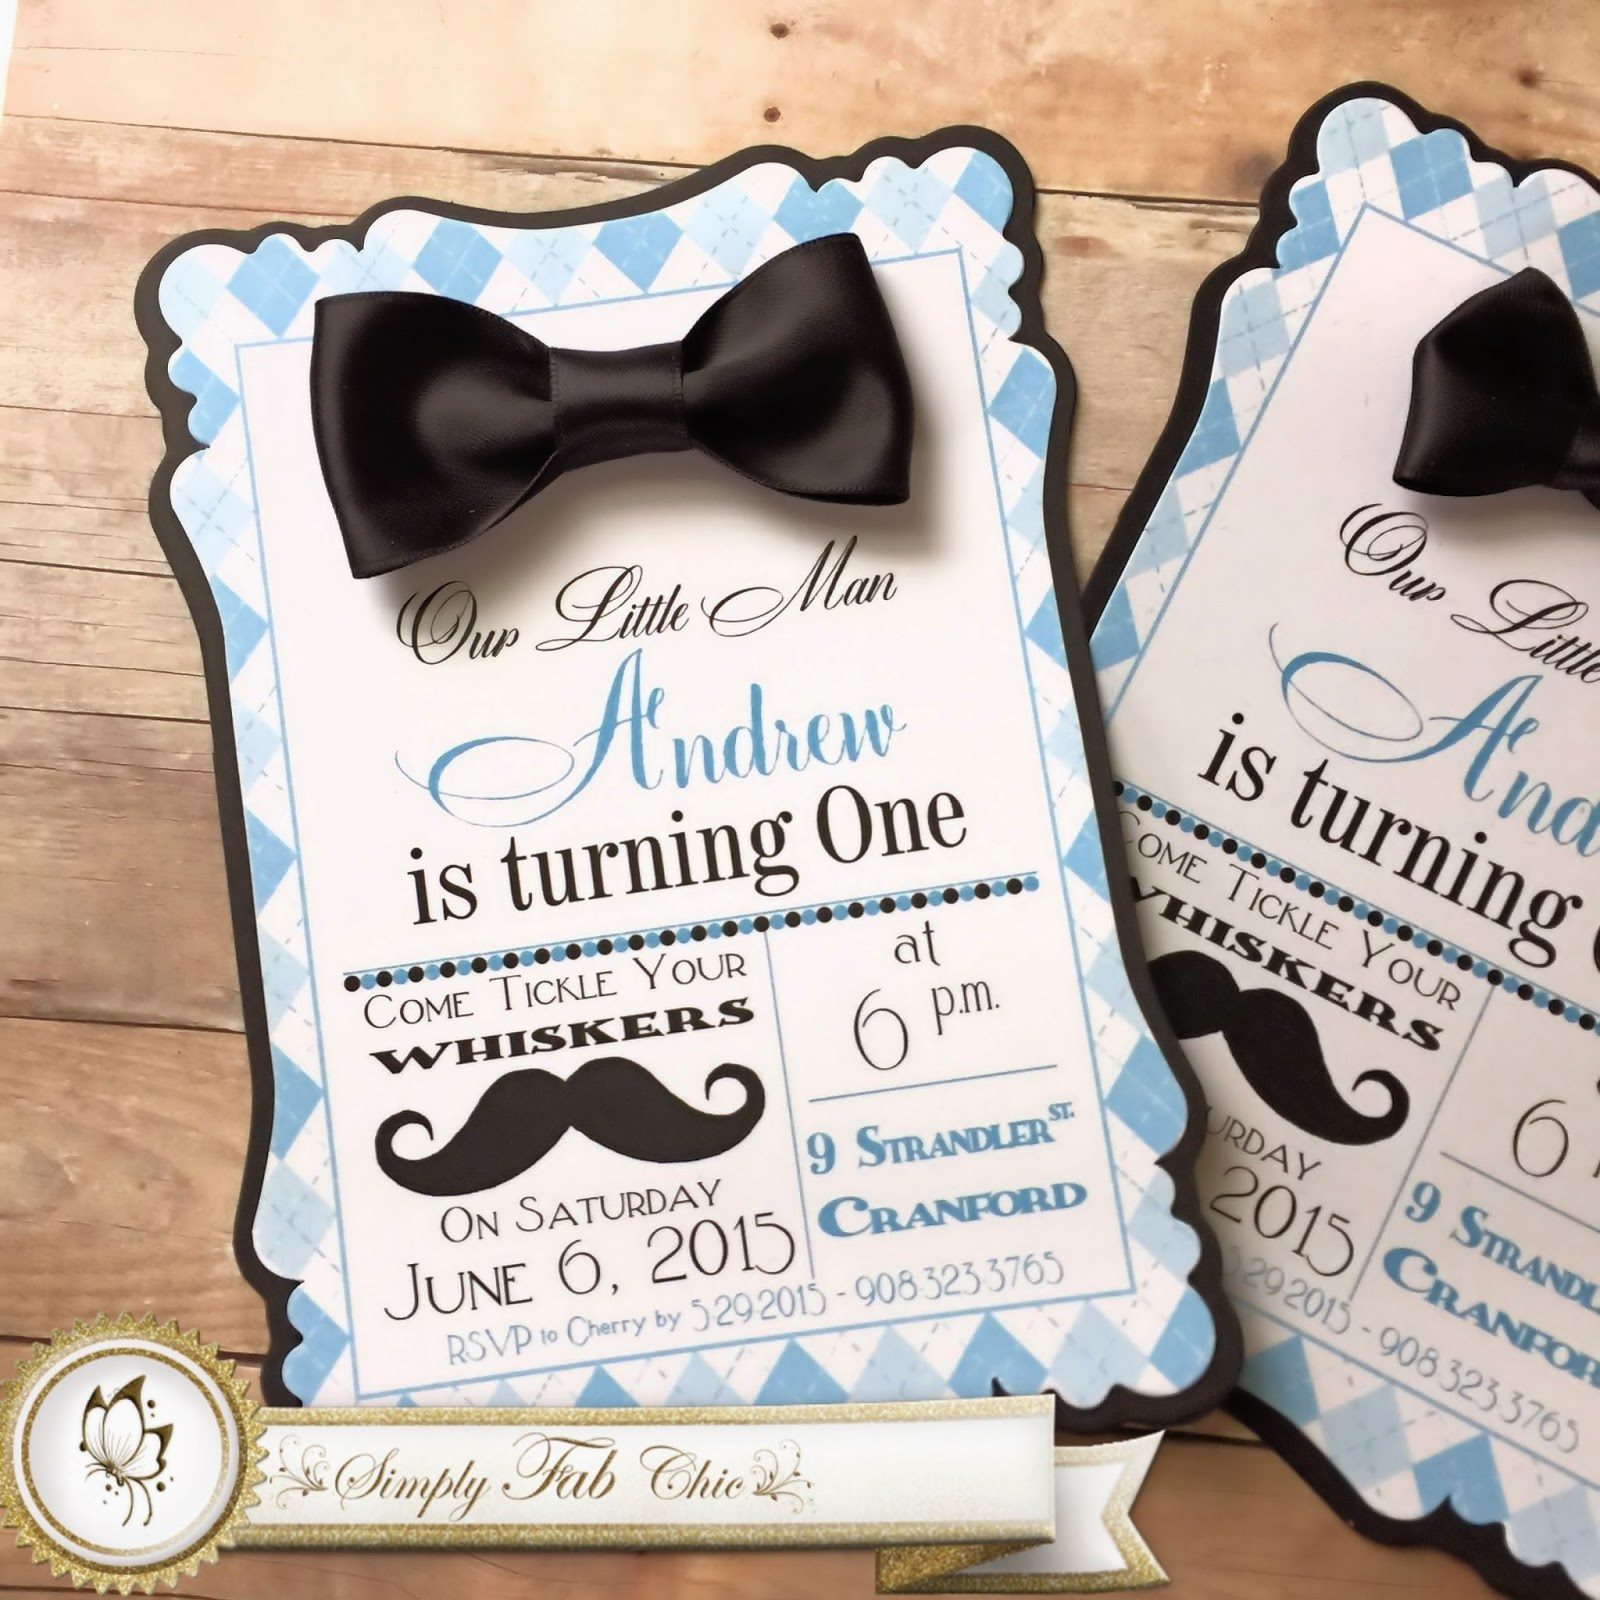 Shabby Chic Invitations is nice invitations design